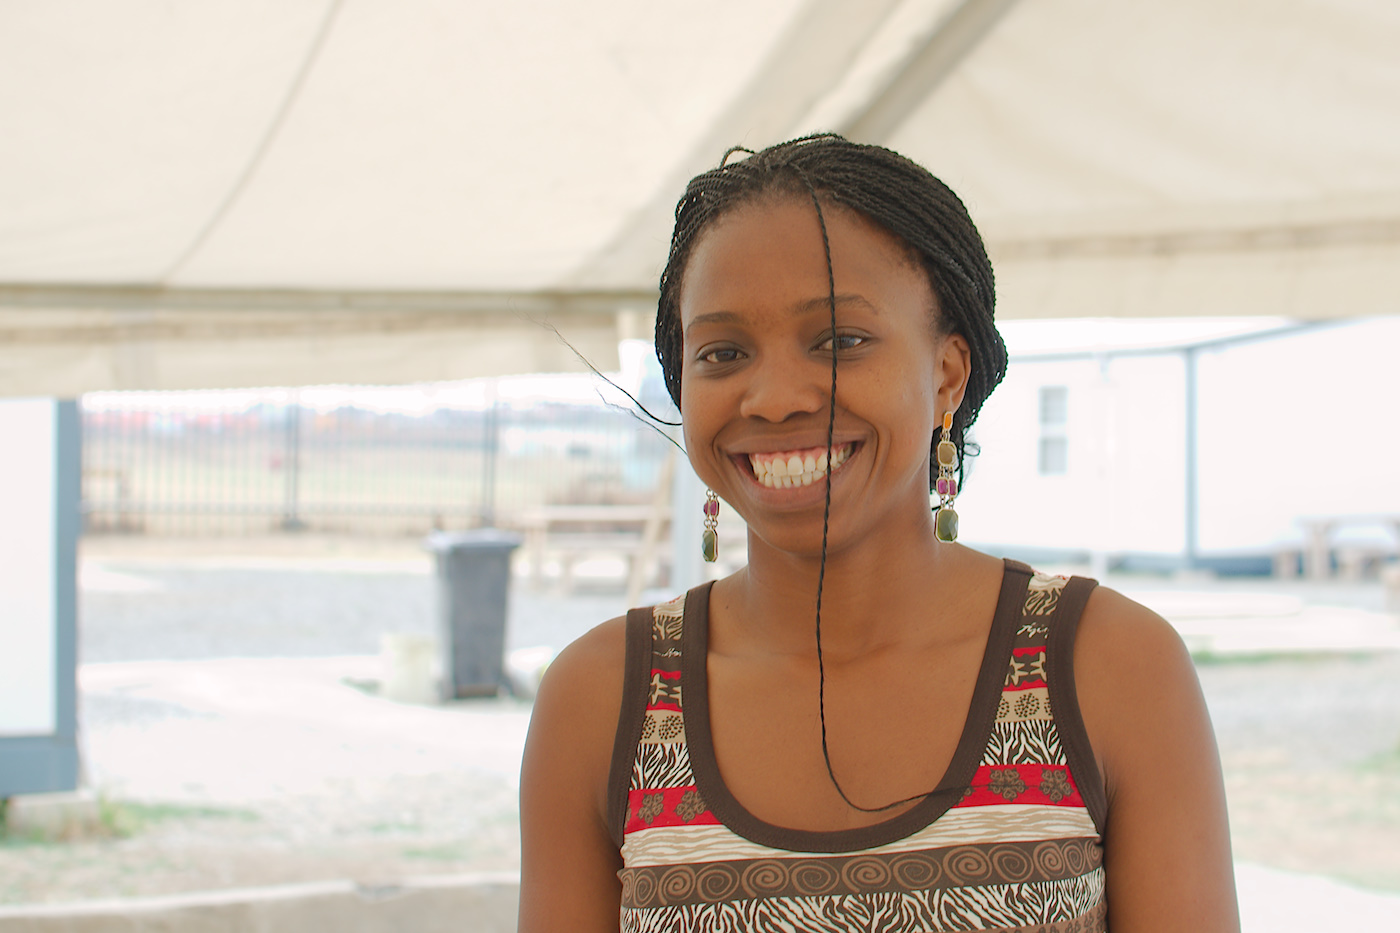 Nonhlana Masina, co-founder of the African School for Excellence.